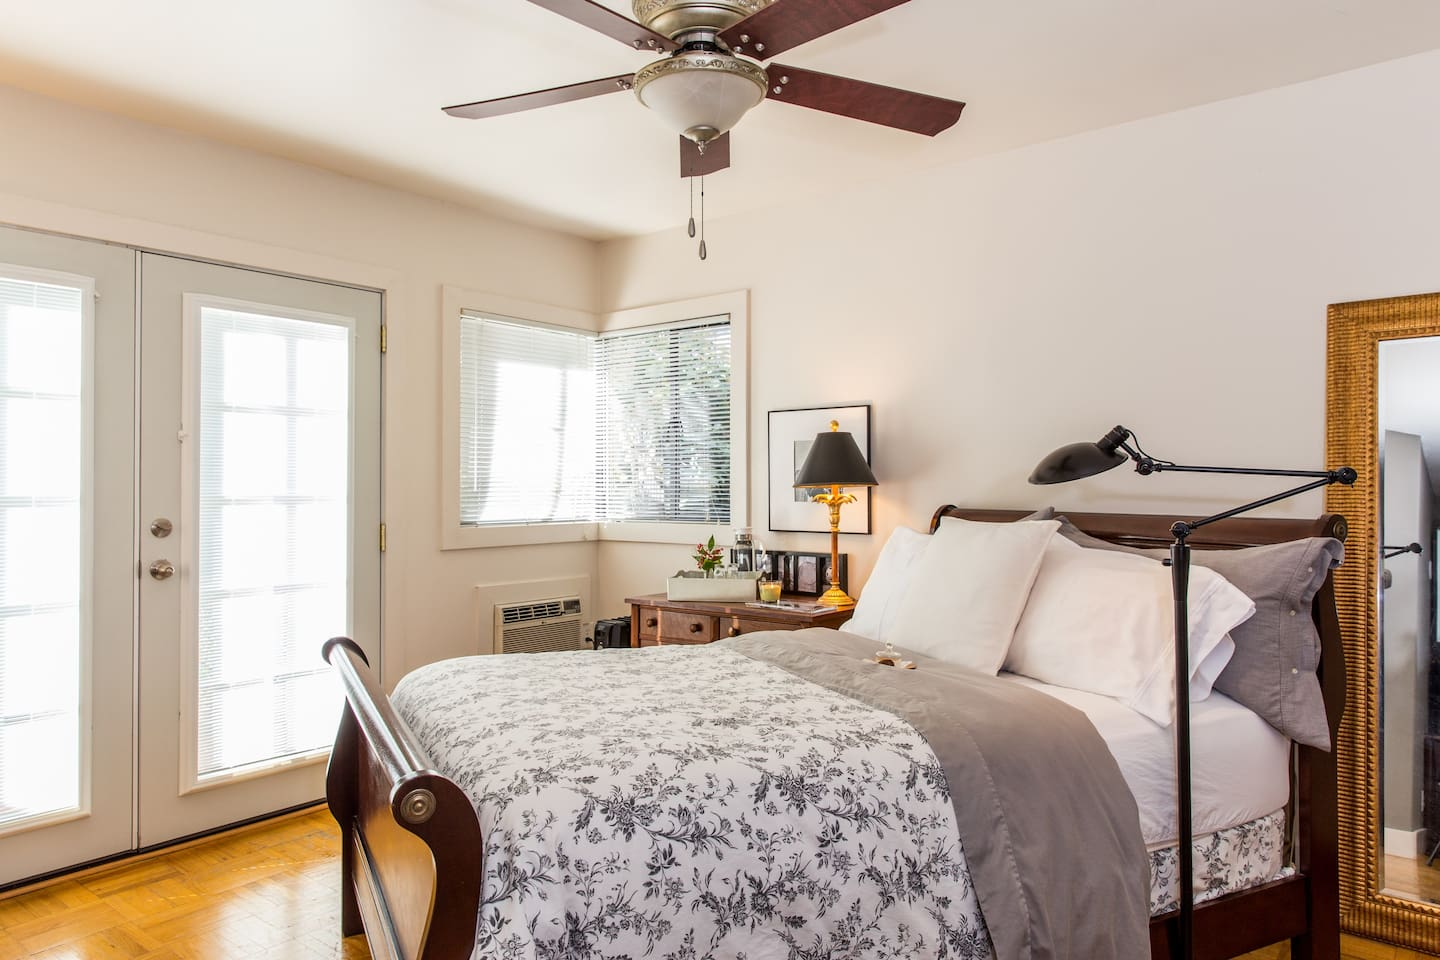 Light and airy room with garden view, good reading light, overhead fan. Close the blinds  and you have the calm of low light and a call to a snuggle in morning or leave them open to your private fenced patio for a morning garden greeting - have it your way